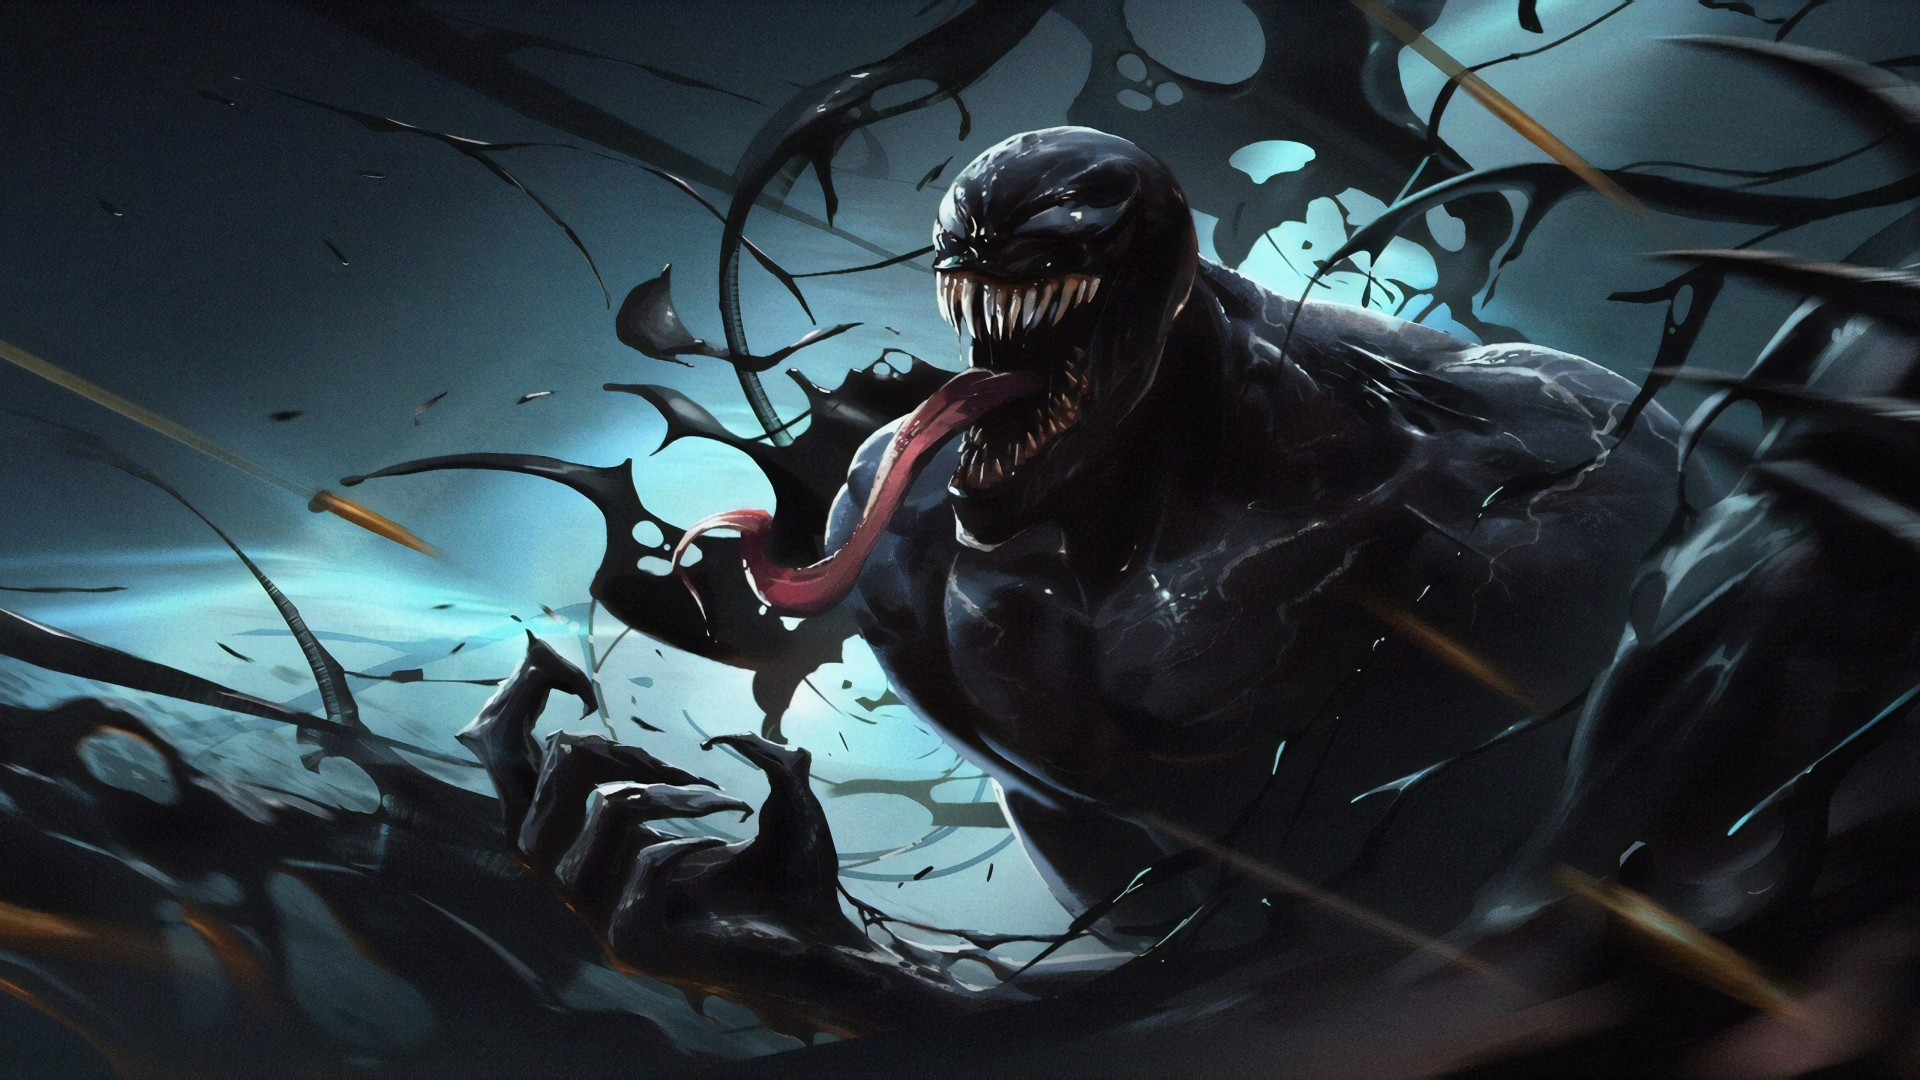 Disney Wallpaper Iphone 6 Venom Artwork 5k Wallpapers Hd Wallpapers Id 27016